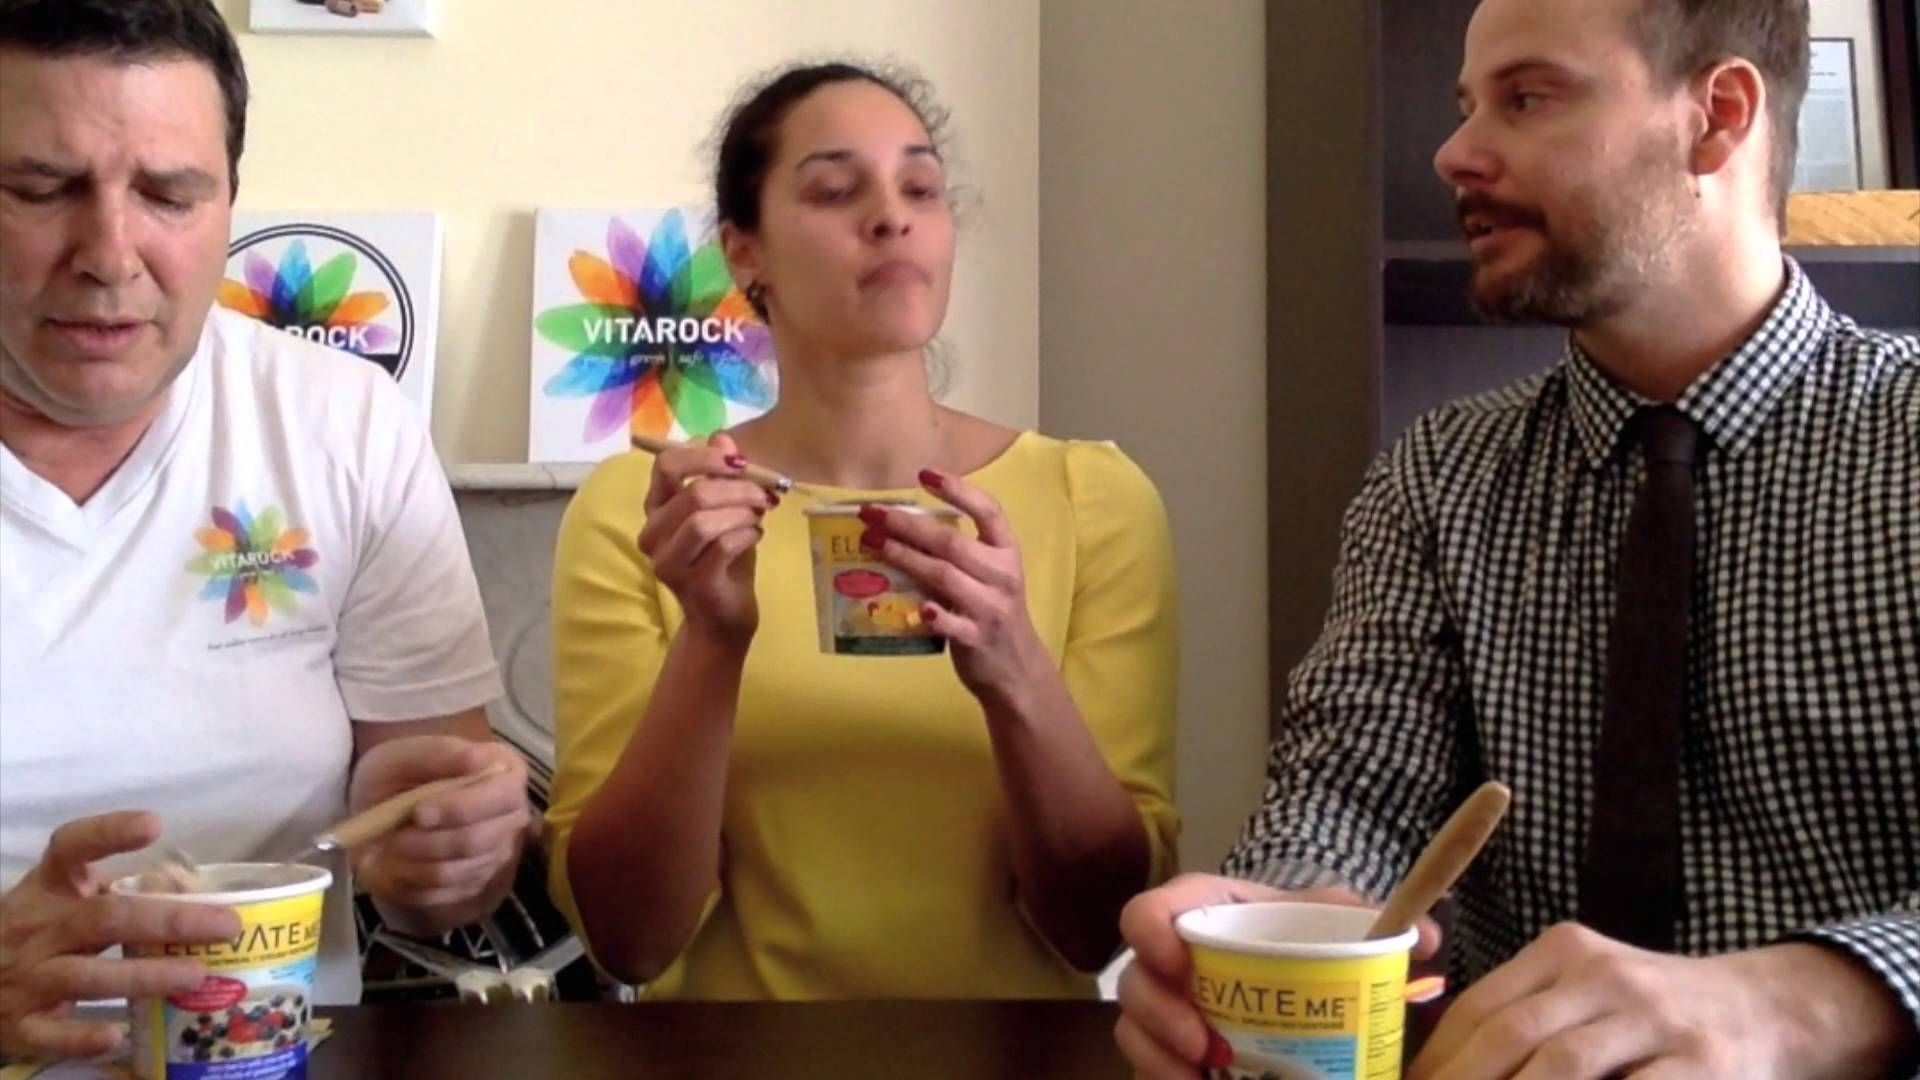 Video product review for Elevate Me Instant Oatmeal.